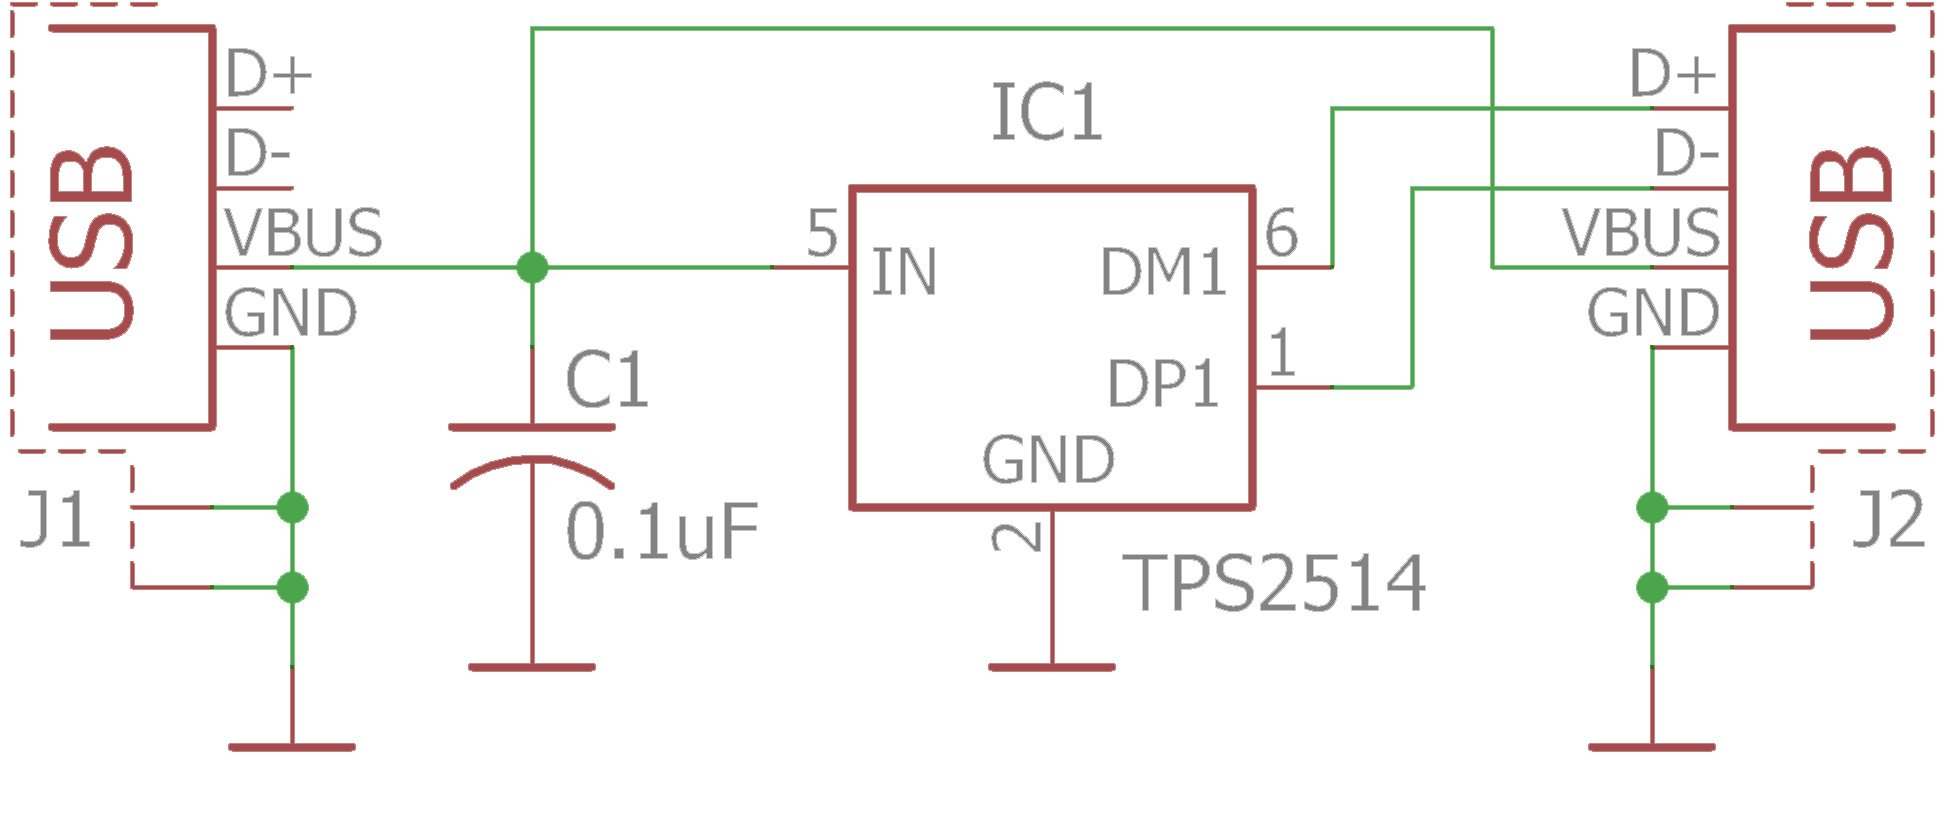 Usb Charging Without Fear Powered Mobile Phone Charger Circuit Diagram The One Particularly Bad Cable I Was Using Introduced A Significant Voltage Drop Forcing My Samsung Device Switching To Slow Mode